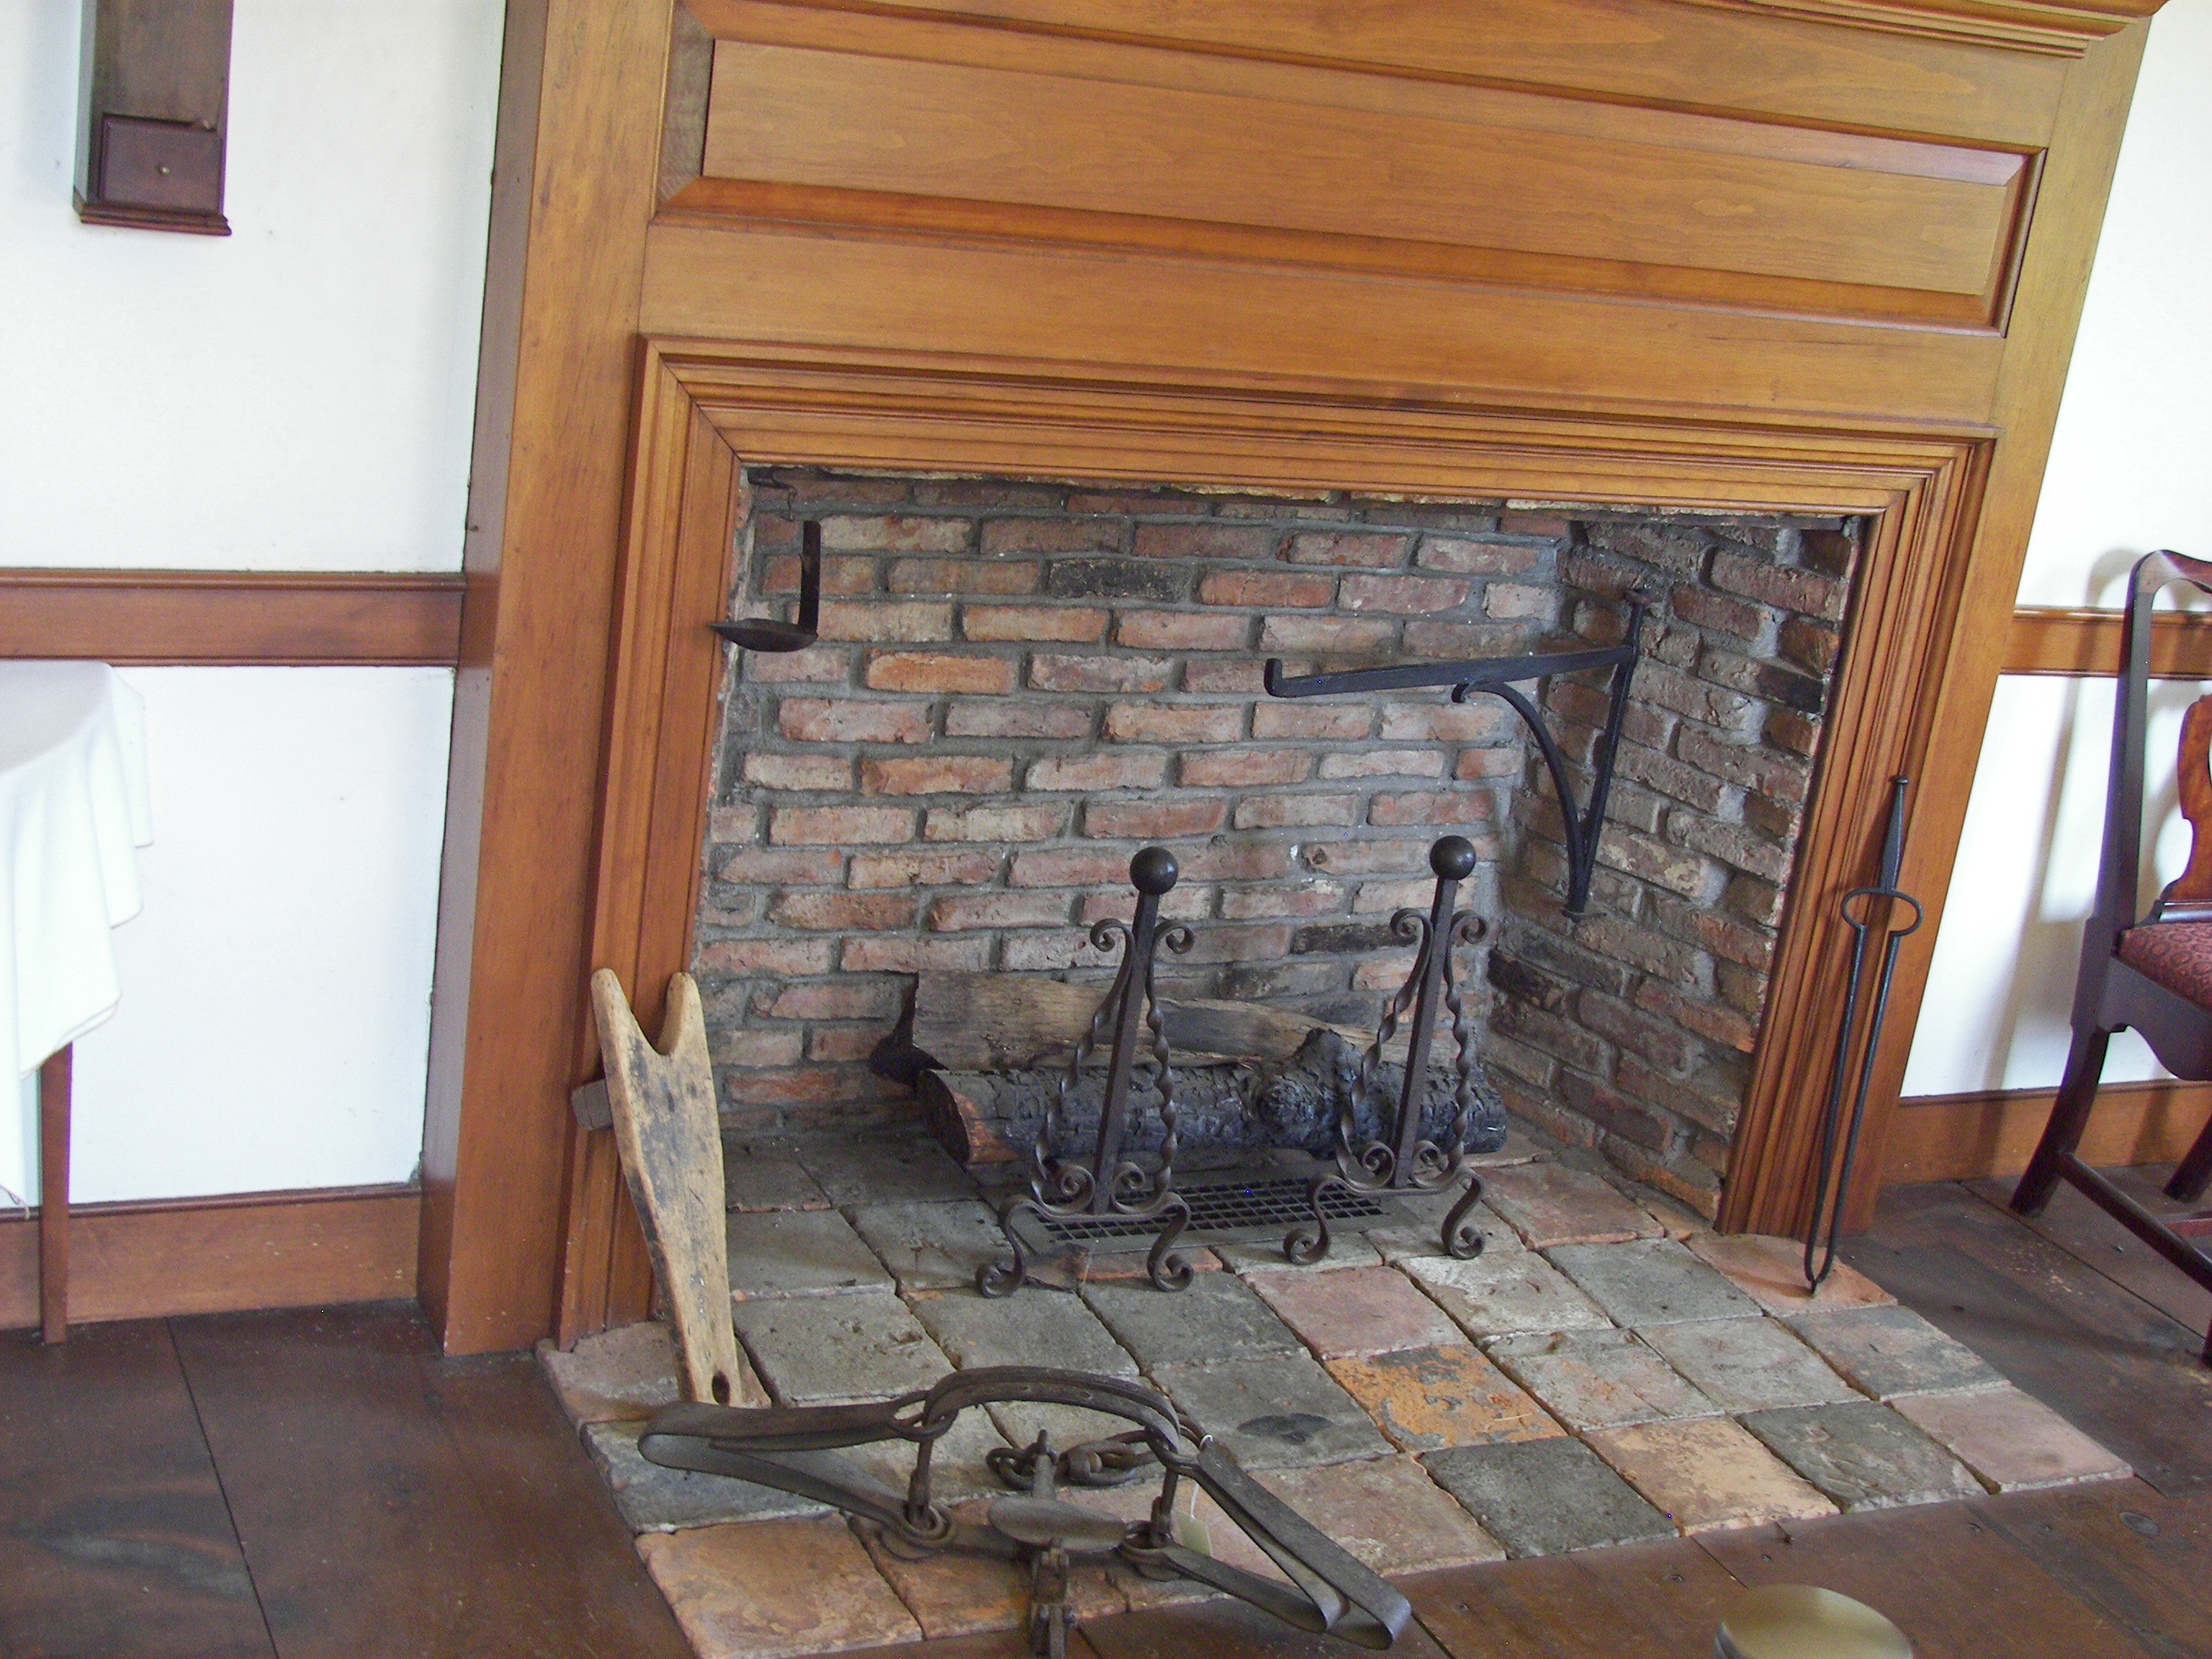 File:Herkimer House southeast parlor fireplace.jpg - Wikimedia Commons